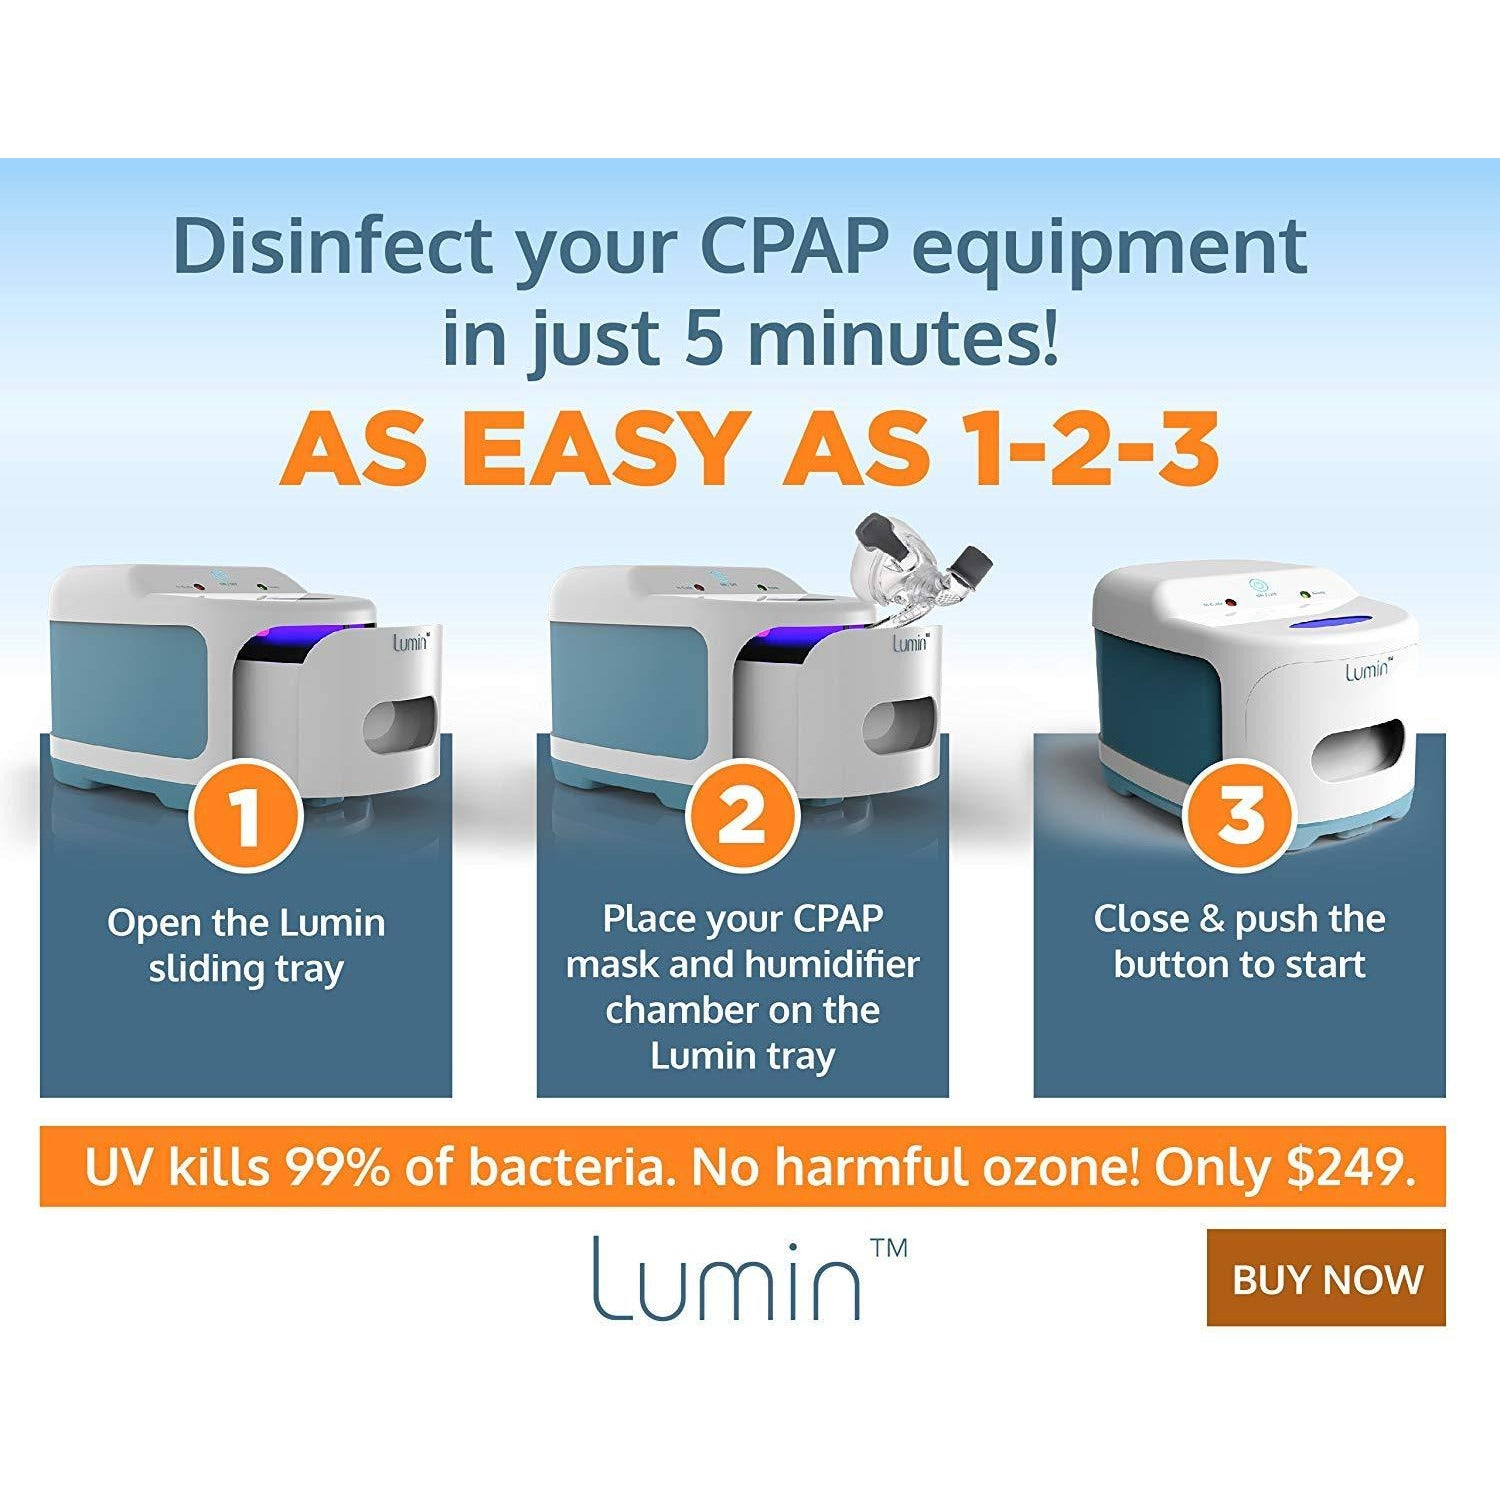 CPAP Cleaner & Sanitizer + Bullet Bundle by Lumin | High Powered UV LIGHT NO OZONE